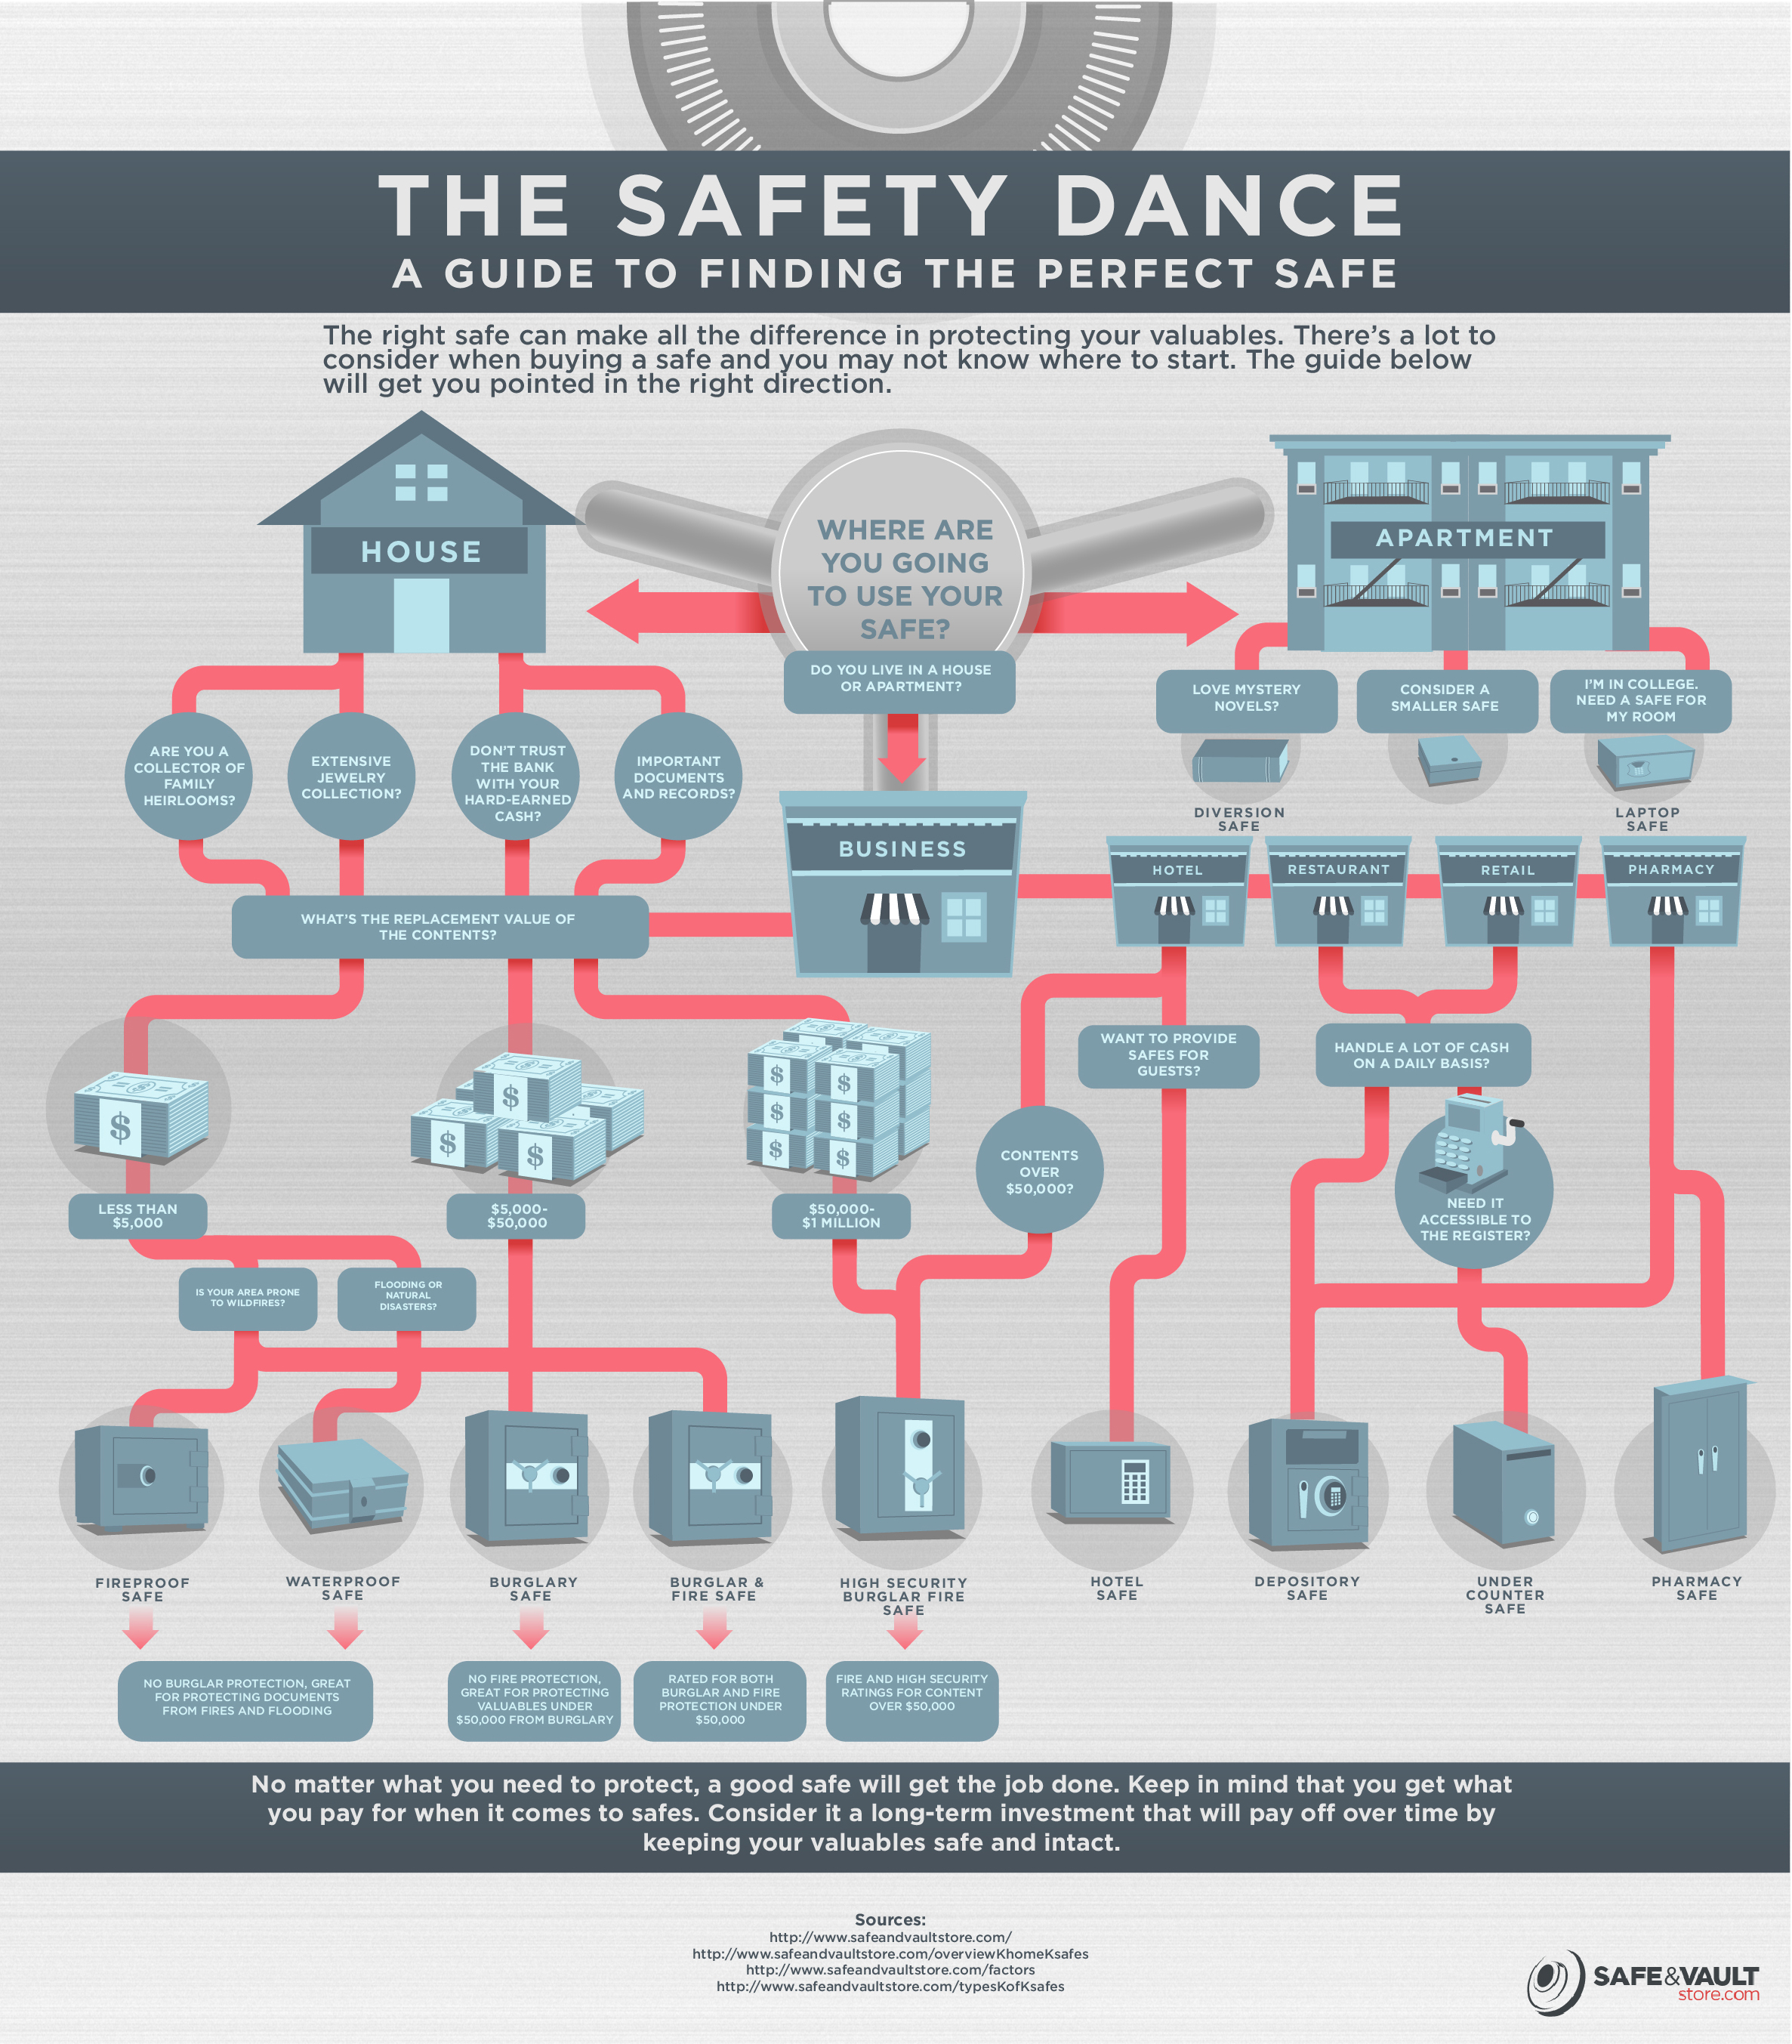 The Safety Dance: A Guide to Finding the Right Safe